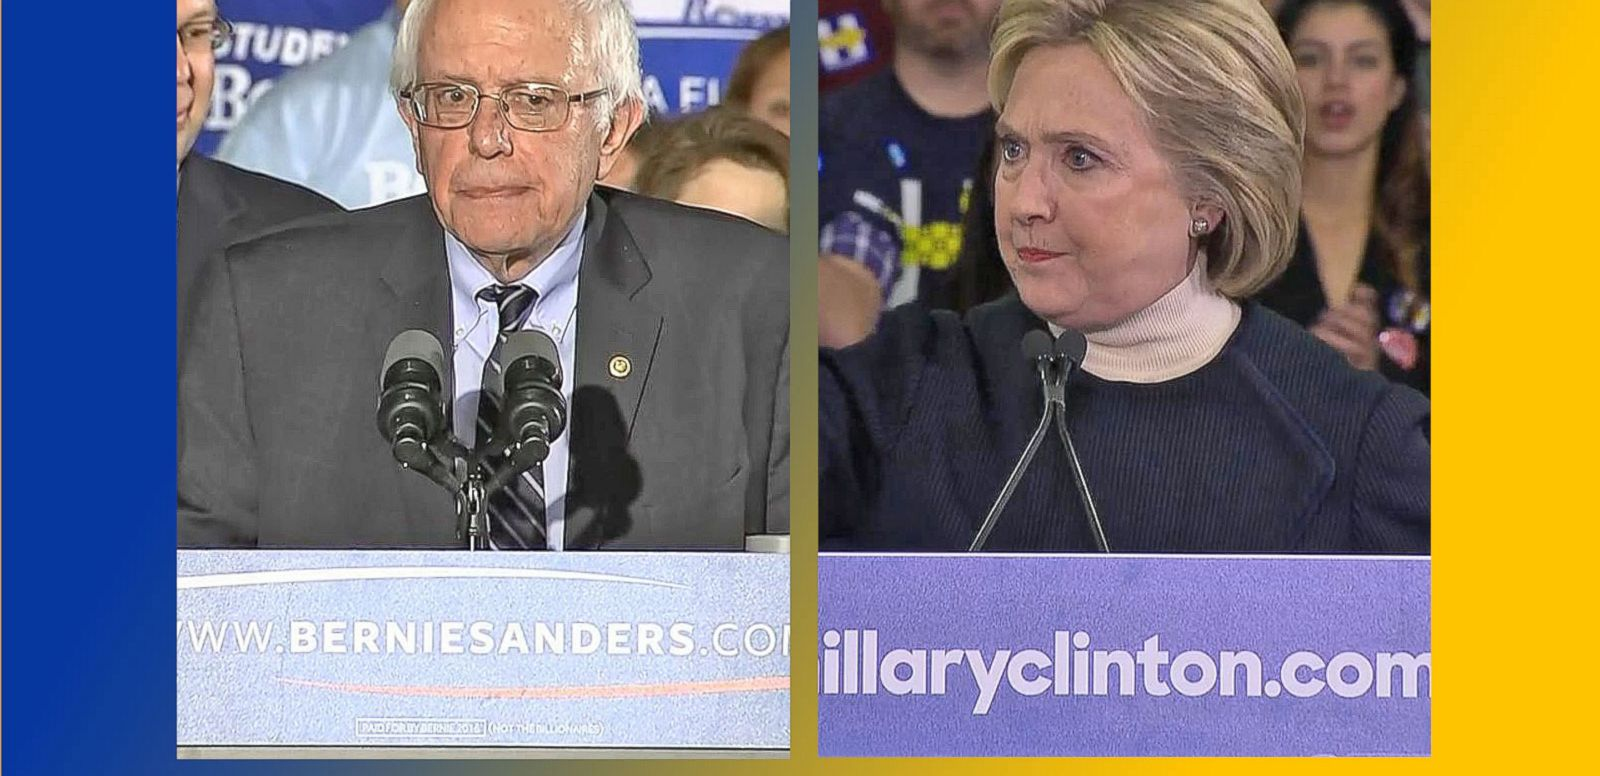 VIDEO: Bernie Sanders Secures Victory Over Hillary Clinton in New Hampshire